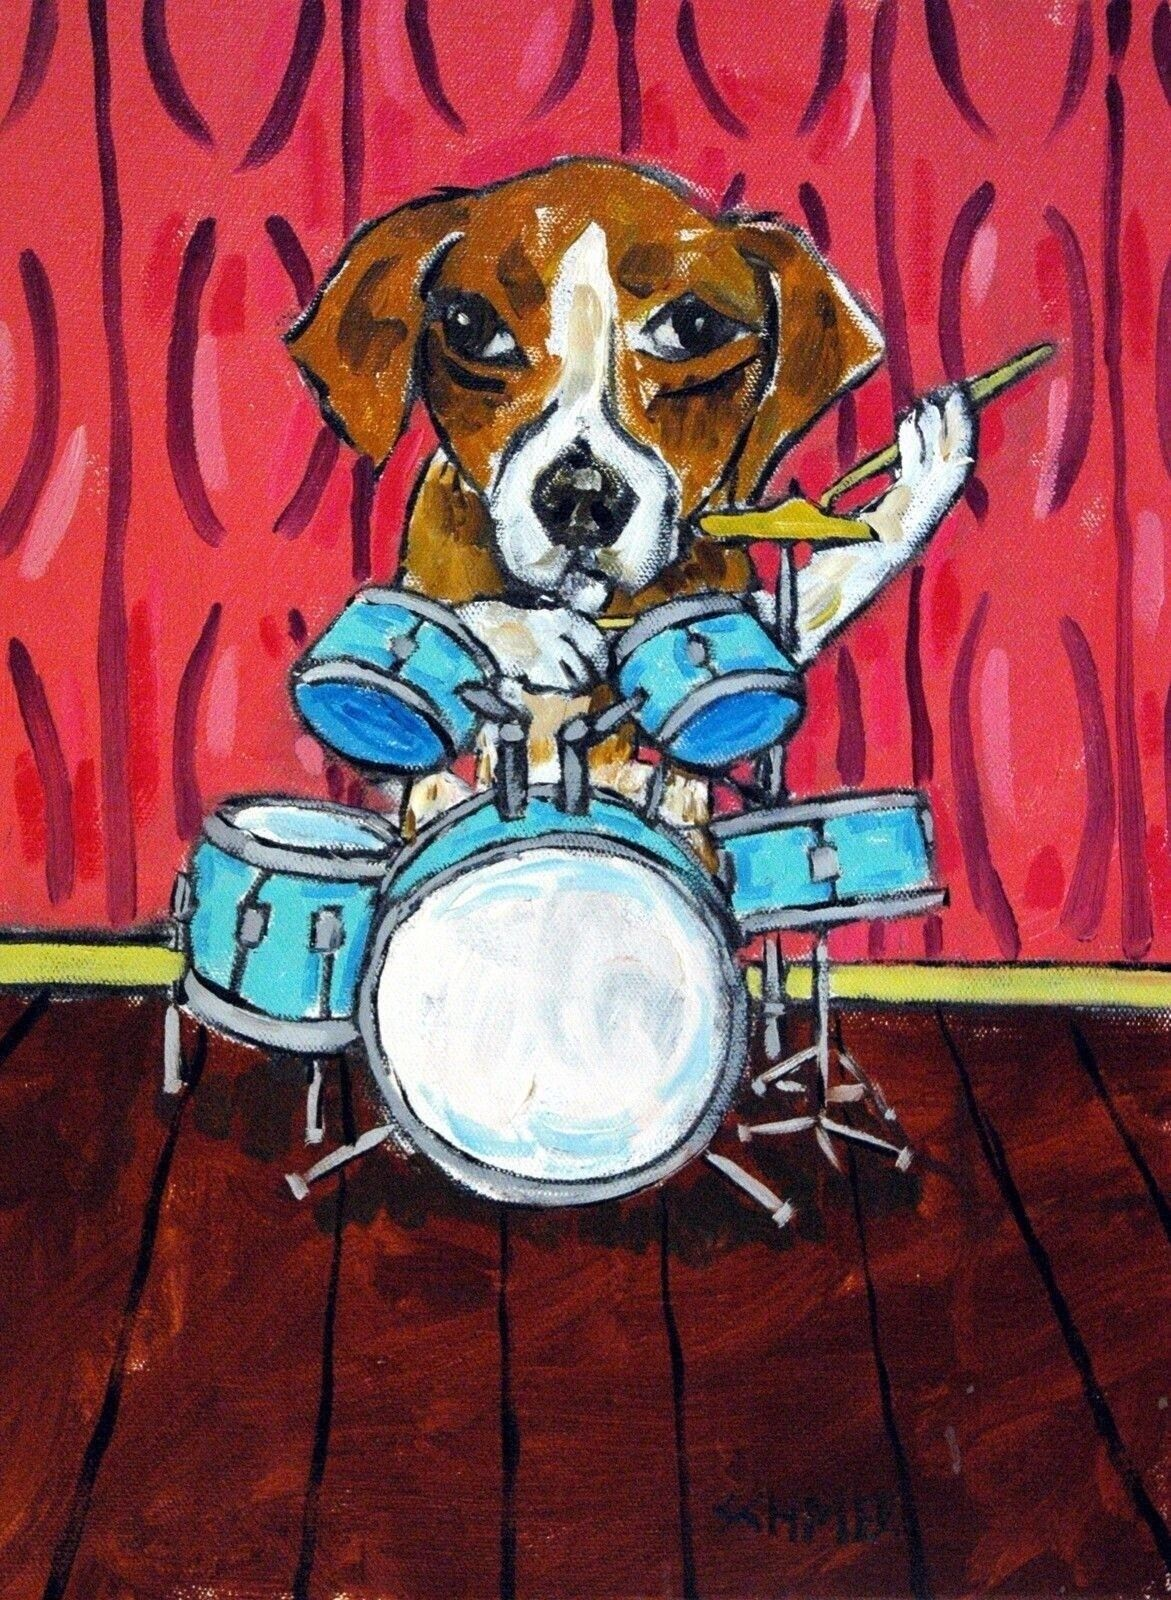 beagle dog playing drums 4x6 small  glossy photo art print JSCHMETZ modern